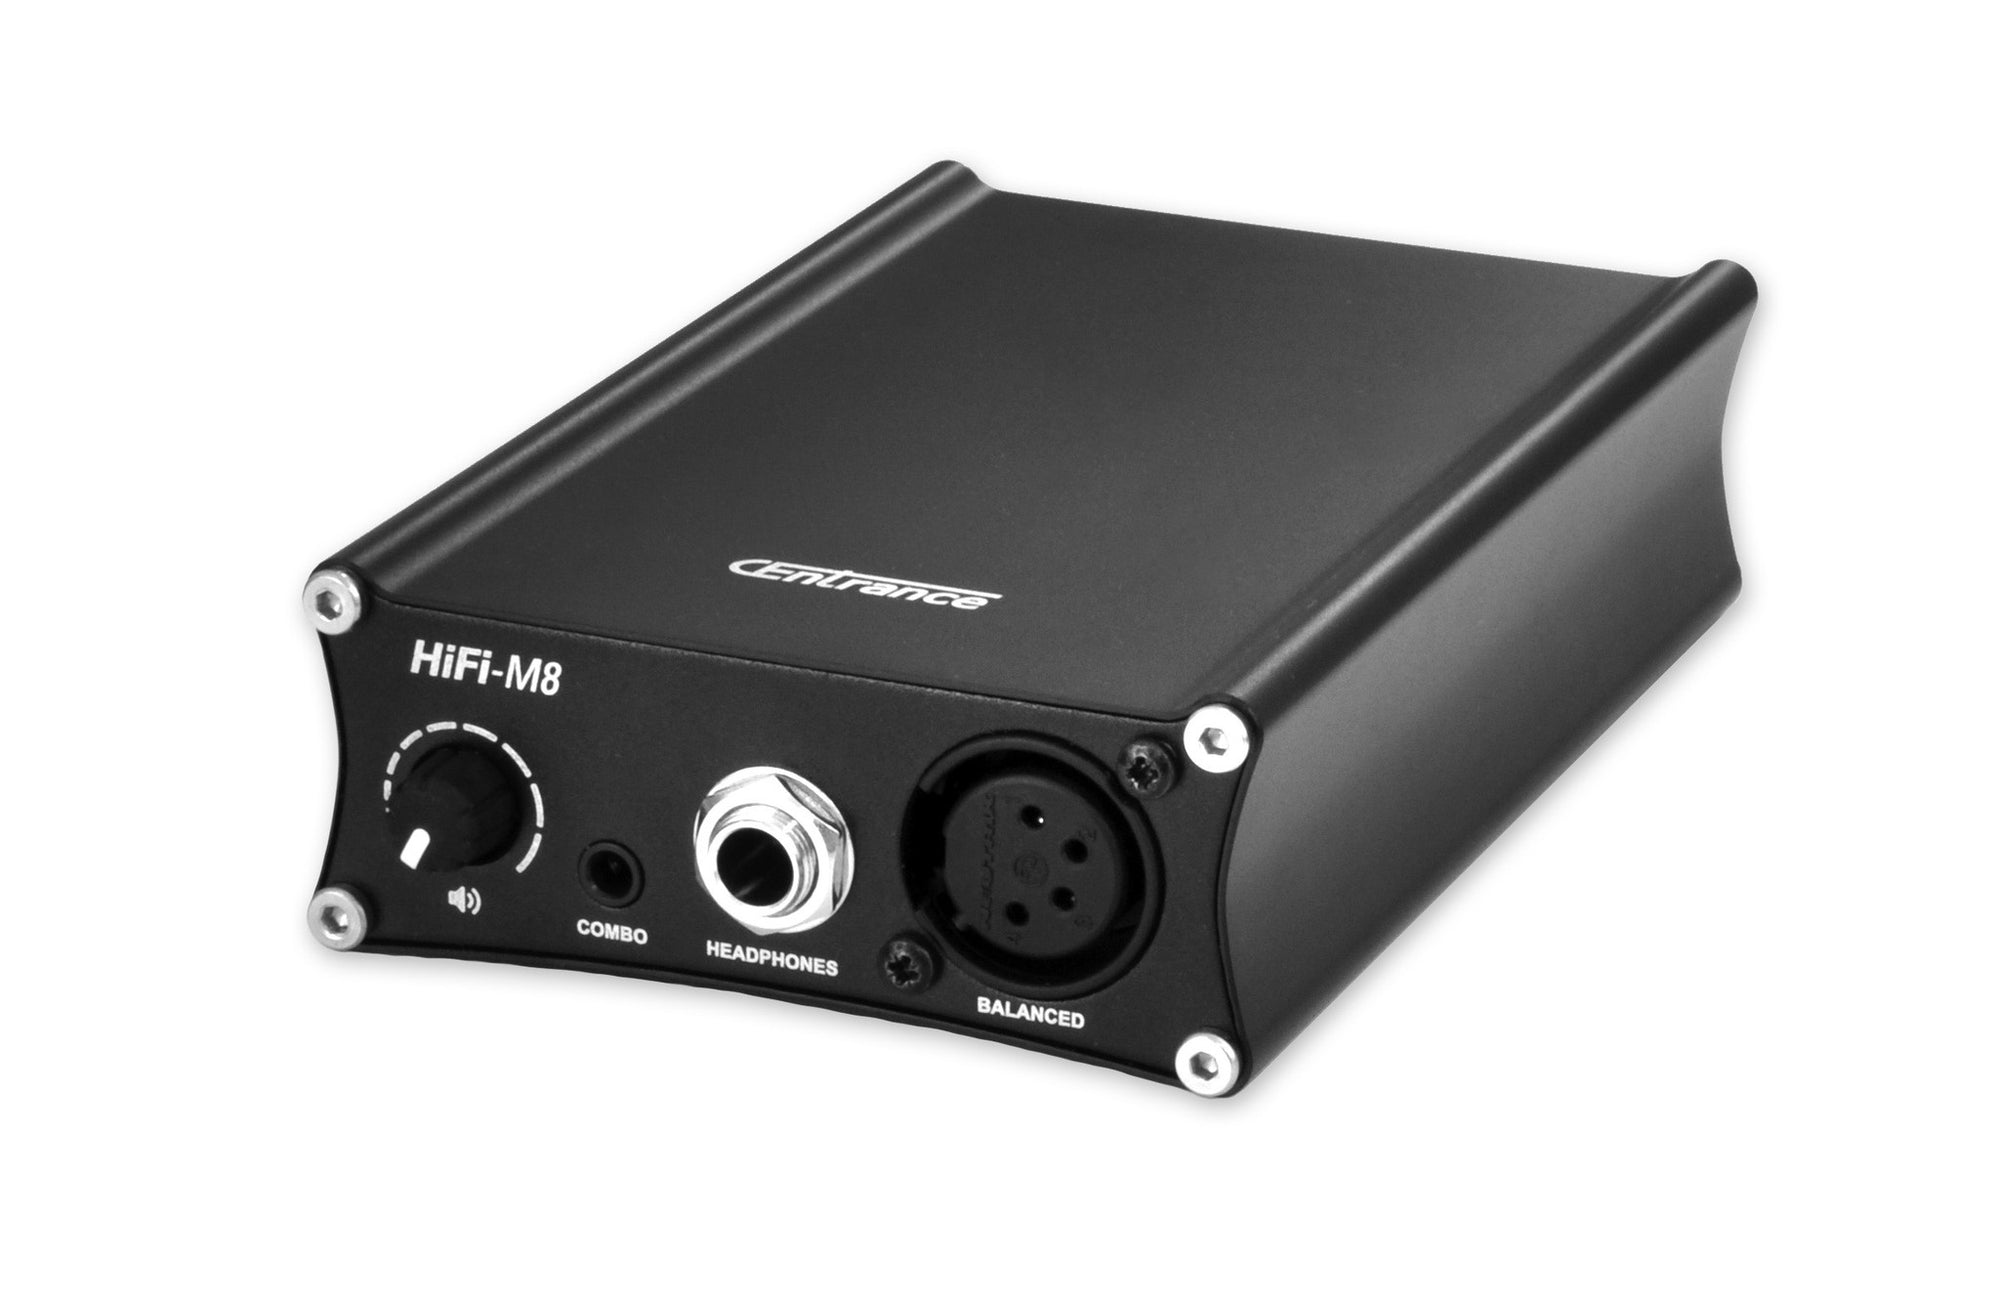 CEntrance Hifi M8 Portable iDevice/USB 24bit/192kHz DAC/Headphone Amplifier (XL4)